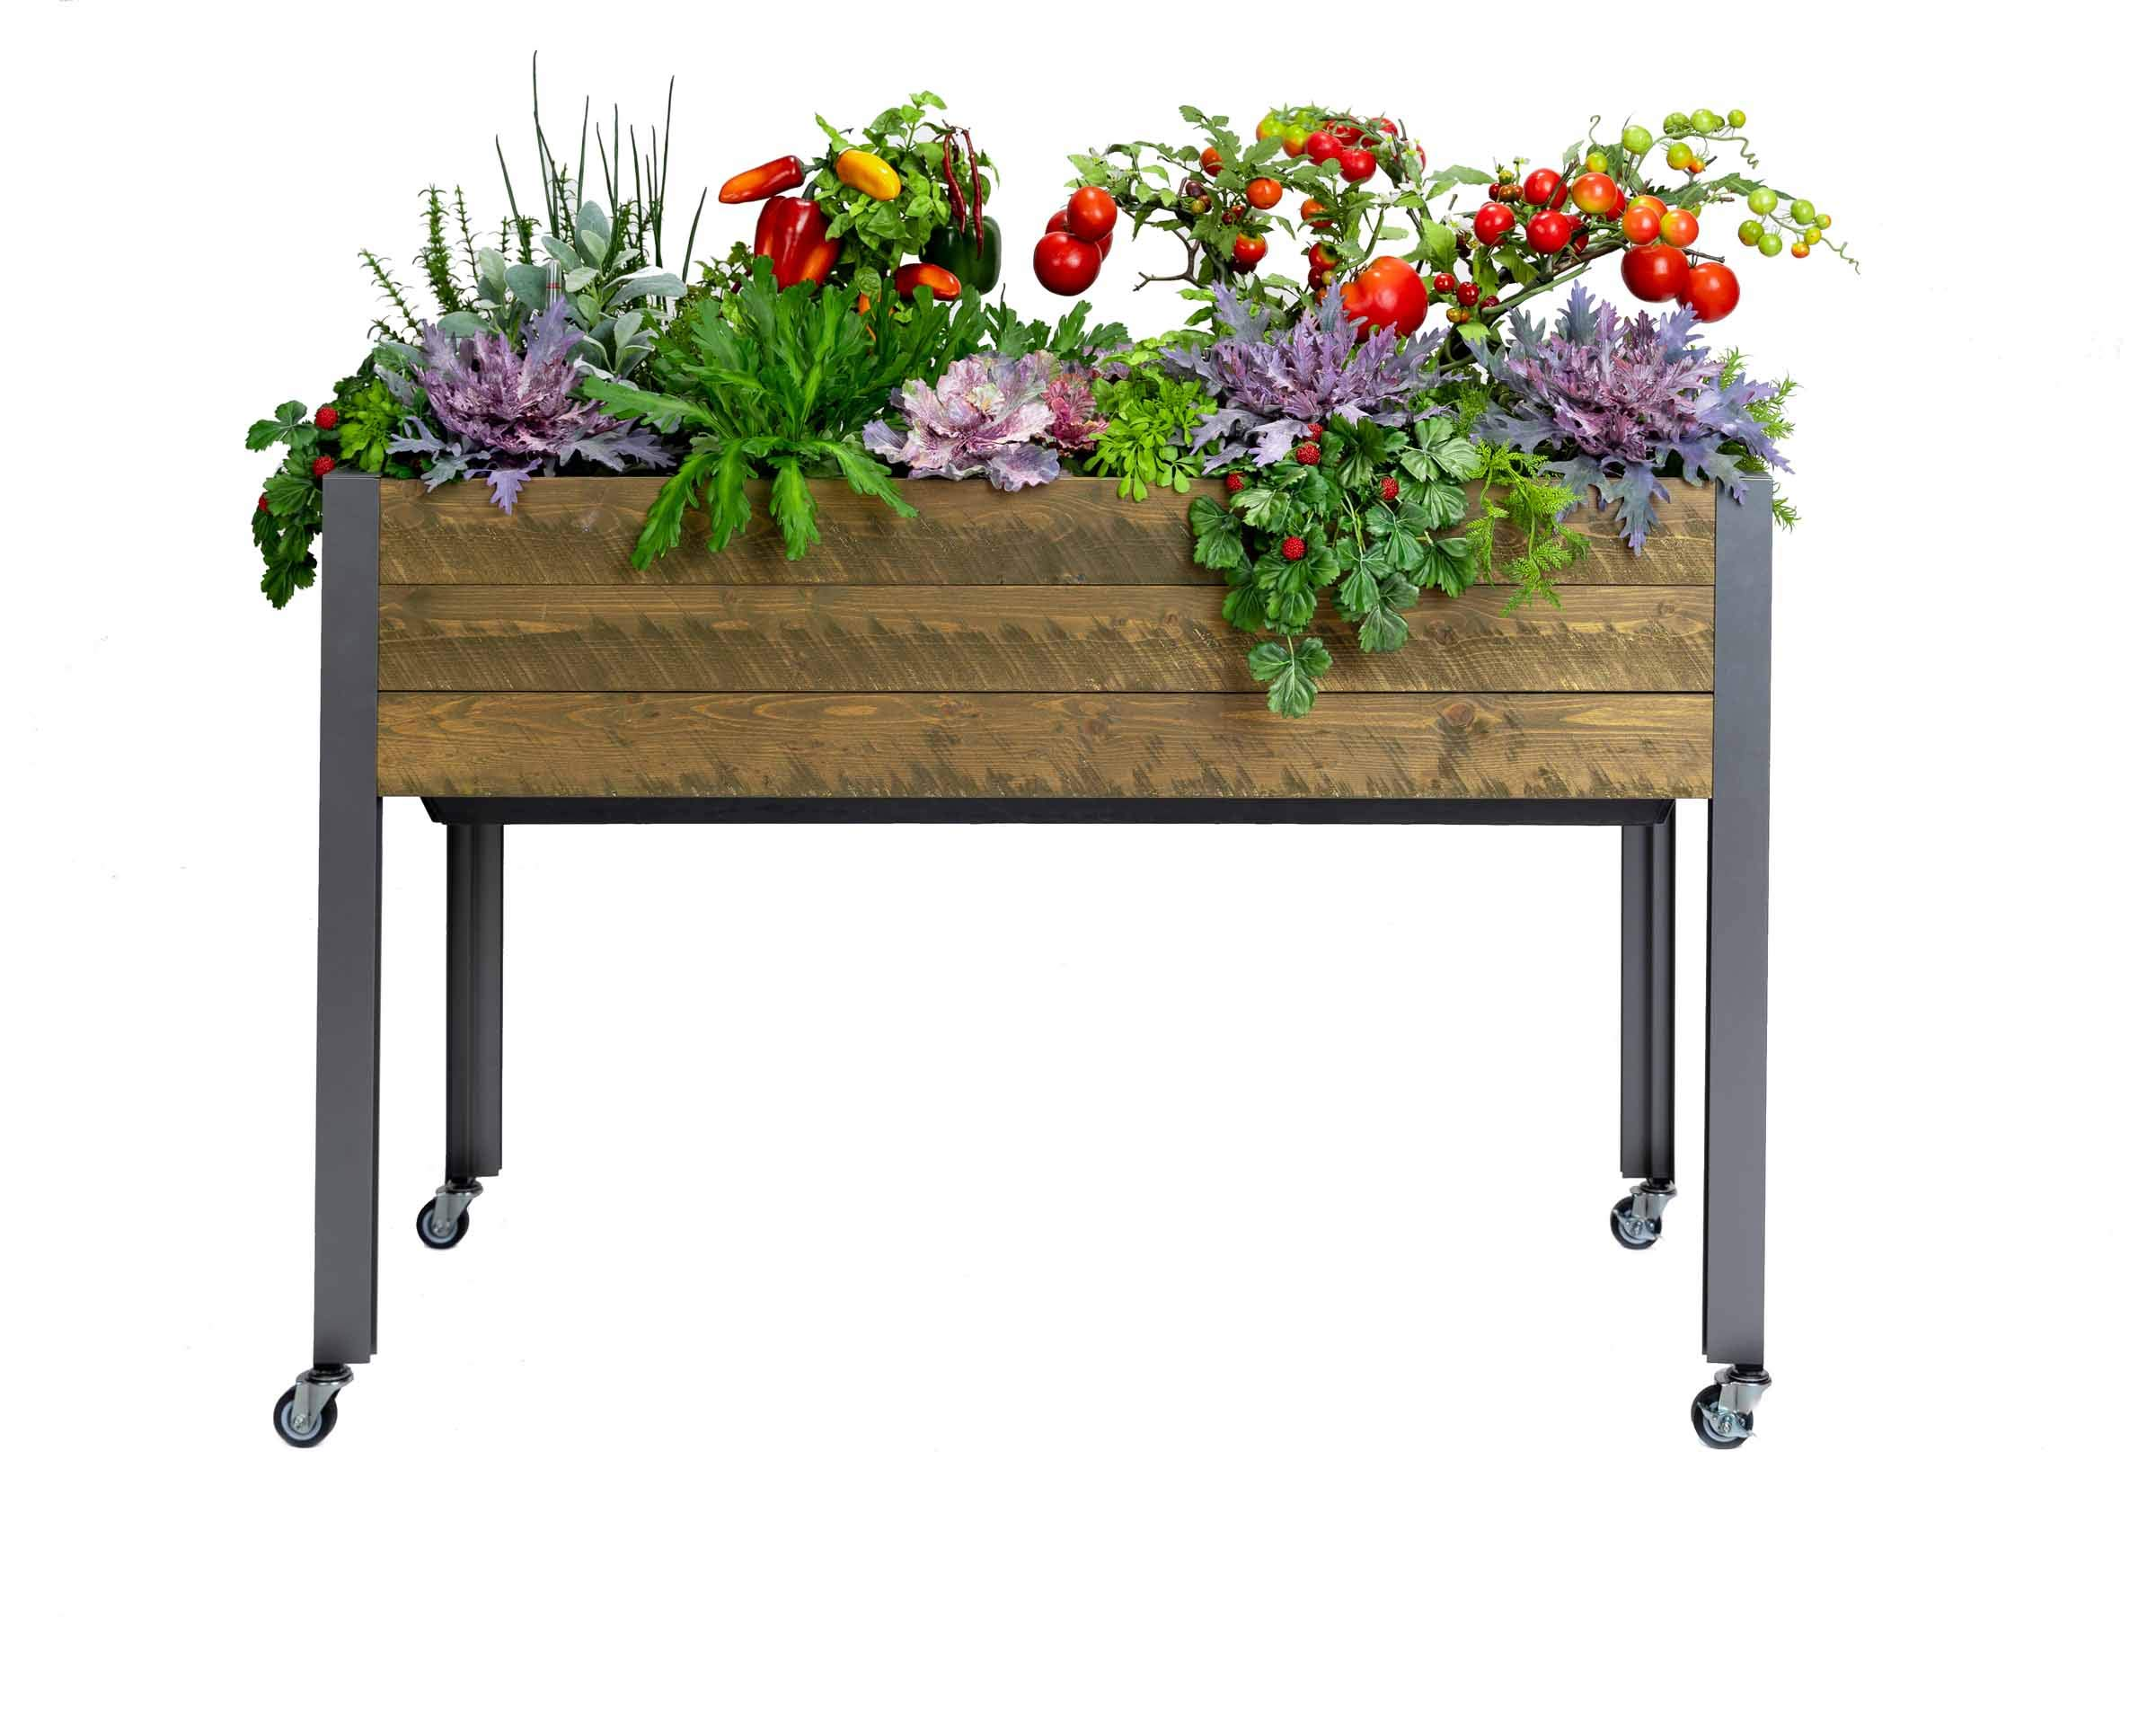 CedarCraft Self-Watering Elevated Spruce Planter (21'' x 47'' x 32''H) - The Flexibility of Container Gardening + The Convenience of a self-Watering System. Grow Healthier, More Productive Plants. by CedarCraft (Image #8)